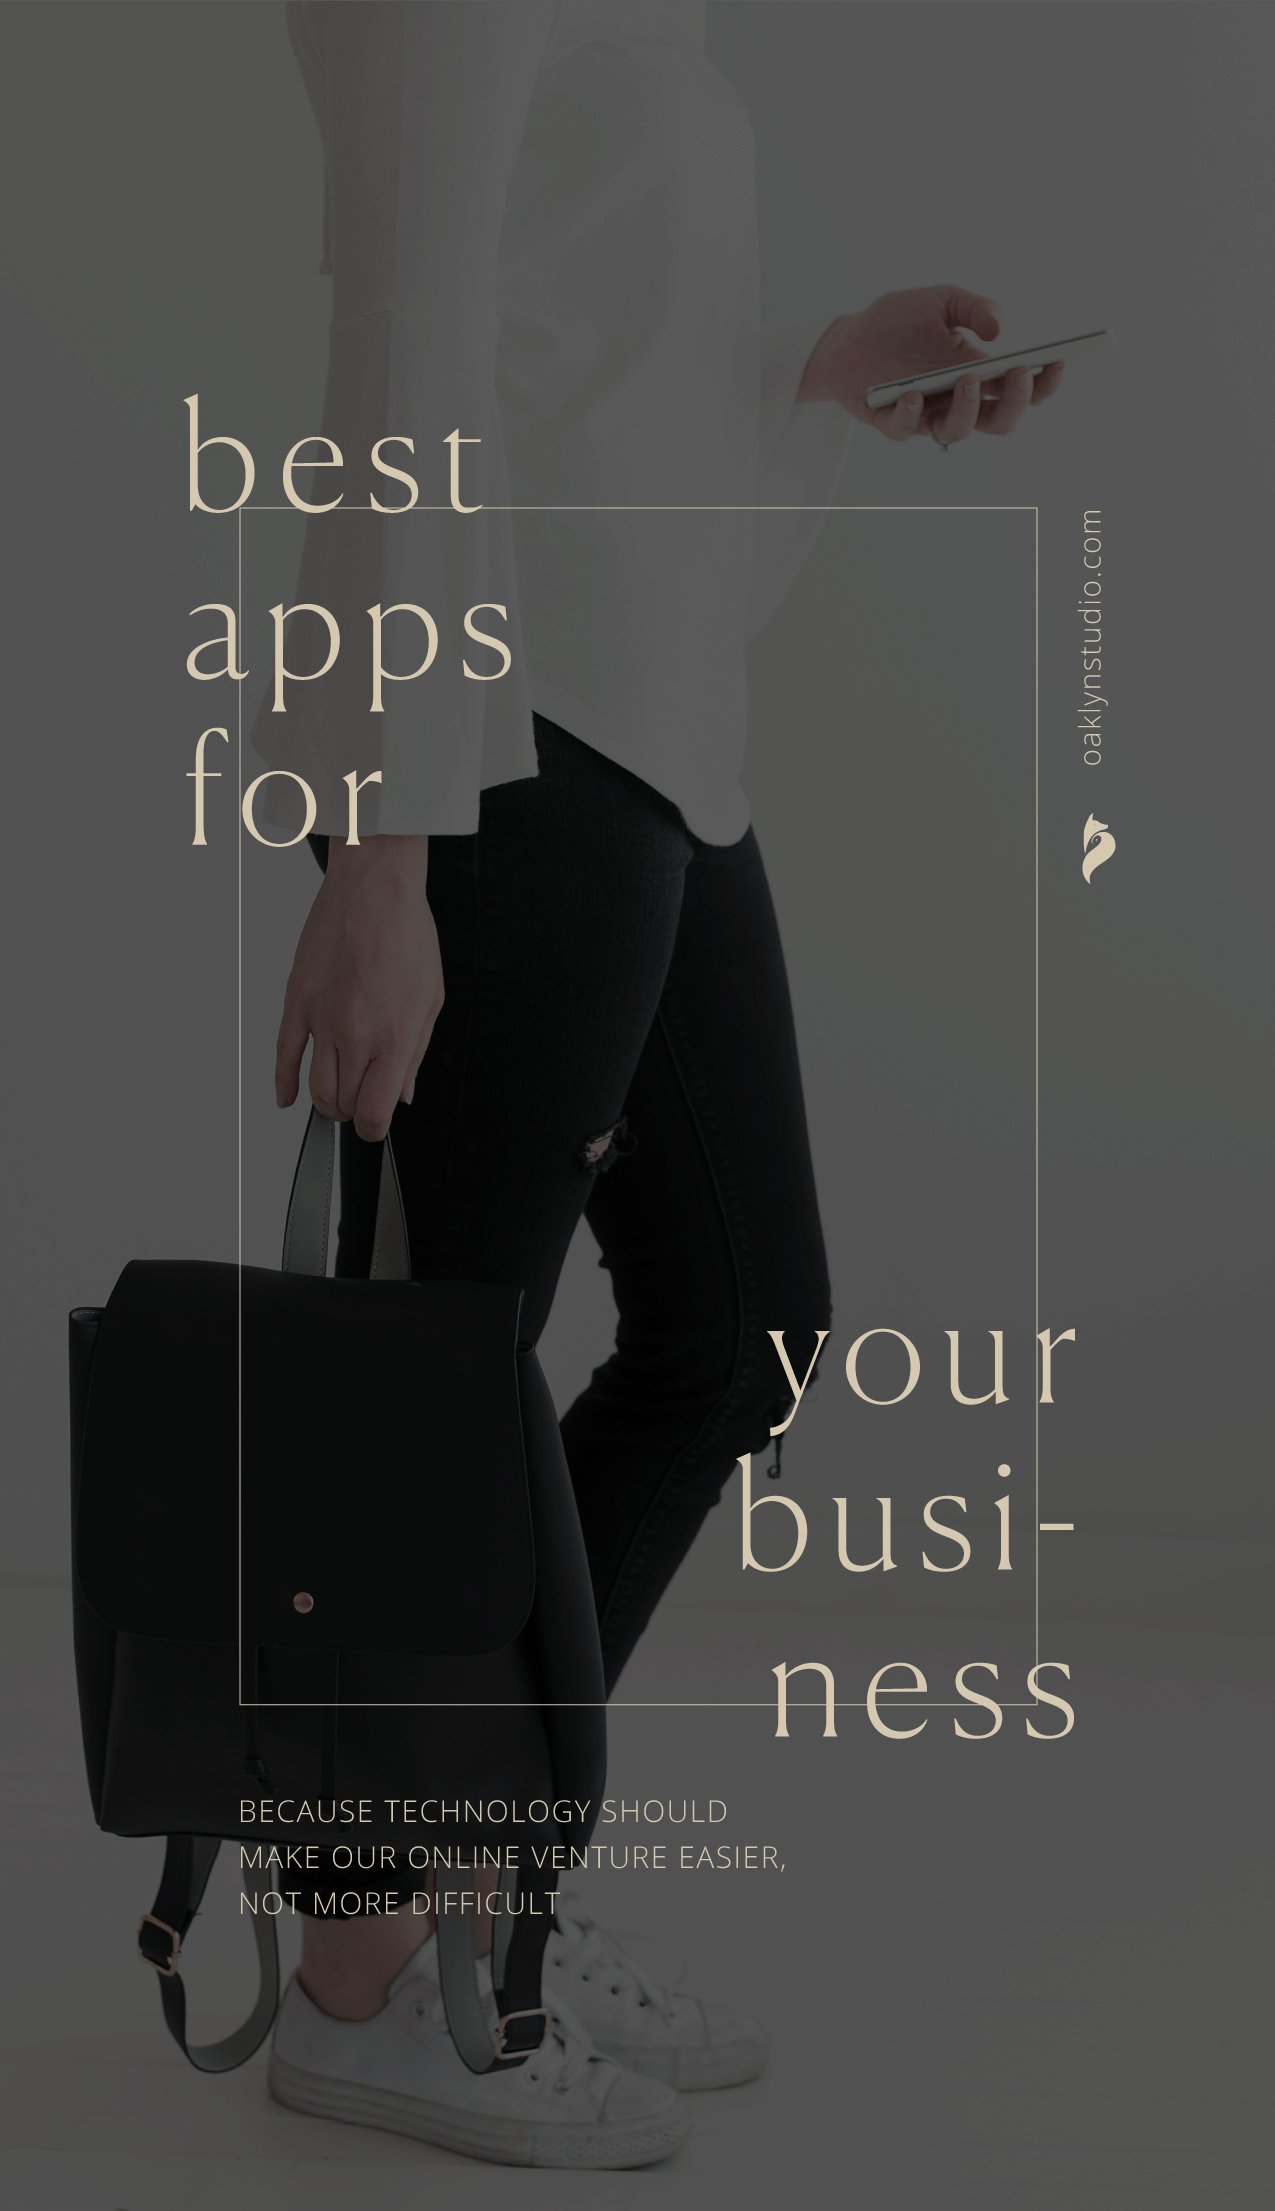 Some of the best apps for your business fashion designs